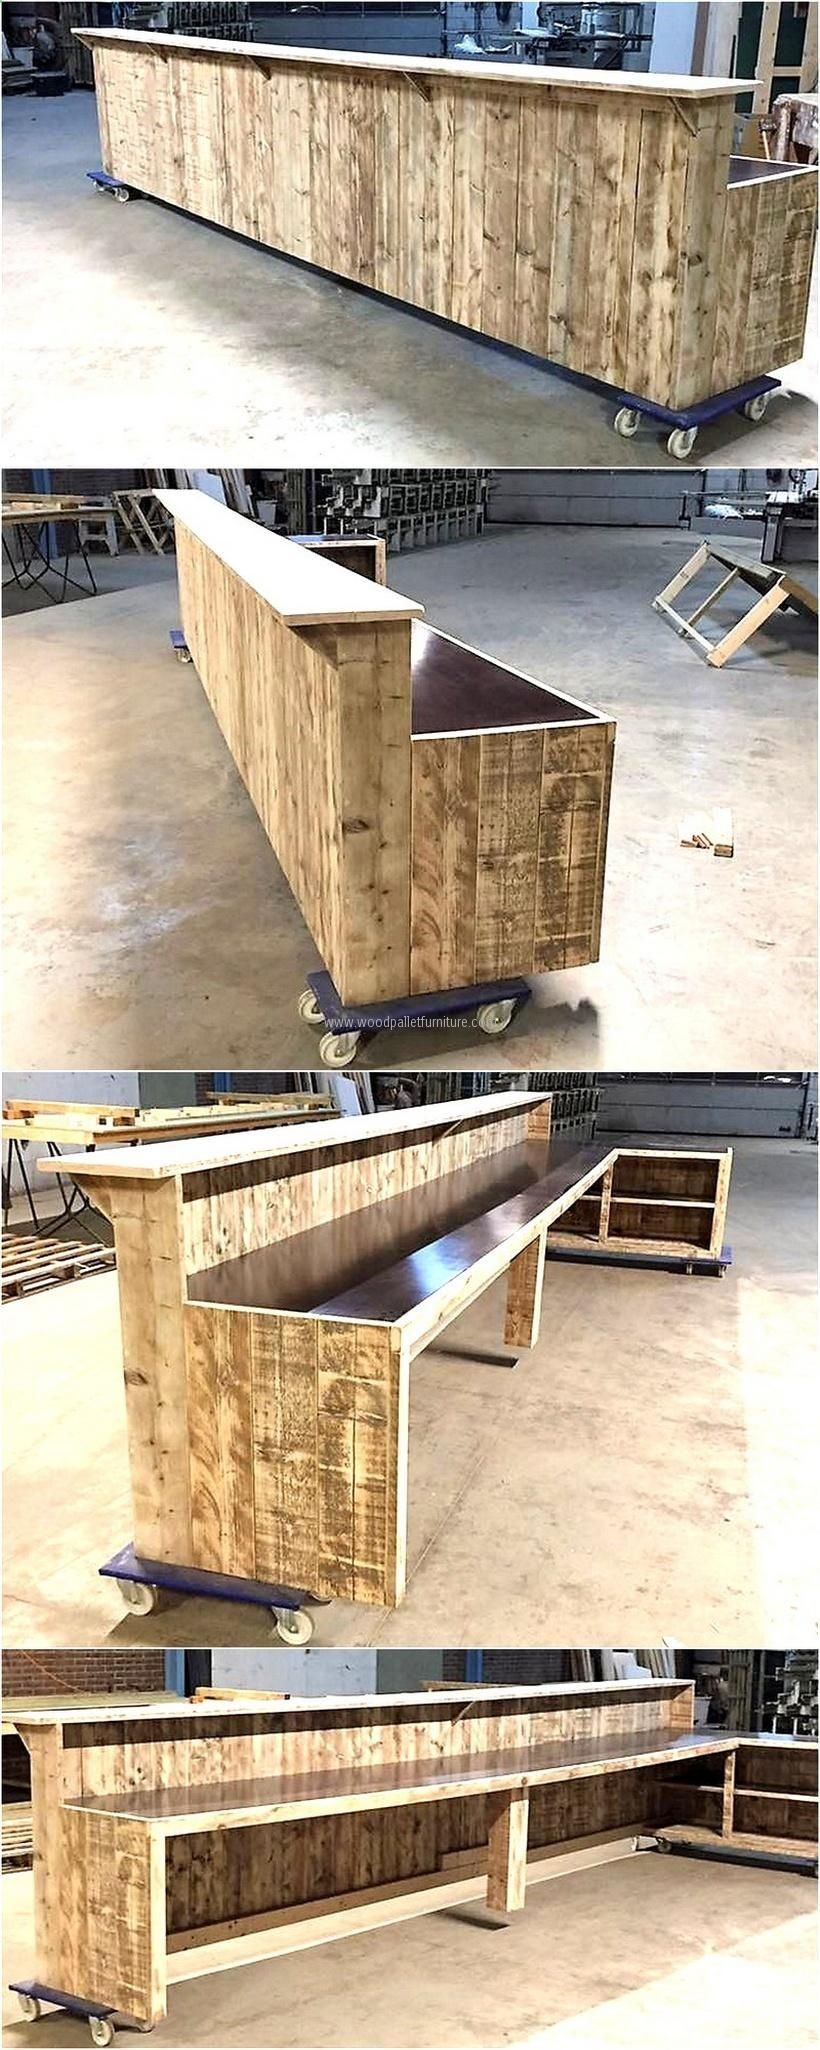 The furniture pieces on the wheels are easy to transfer anywhere as